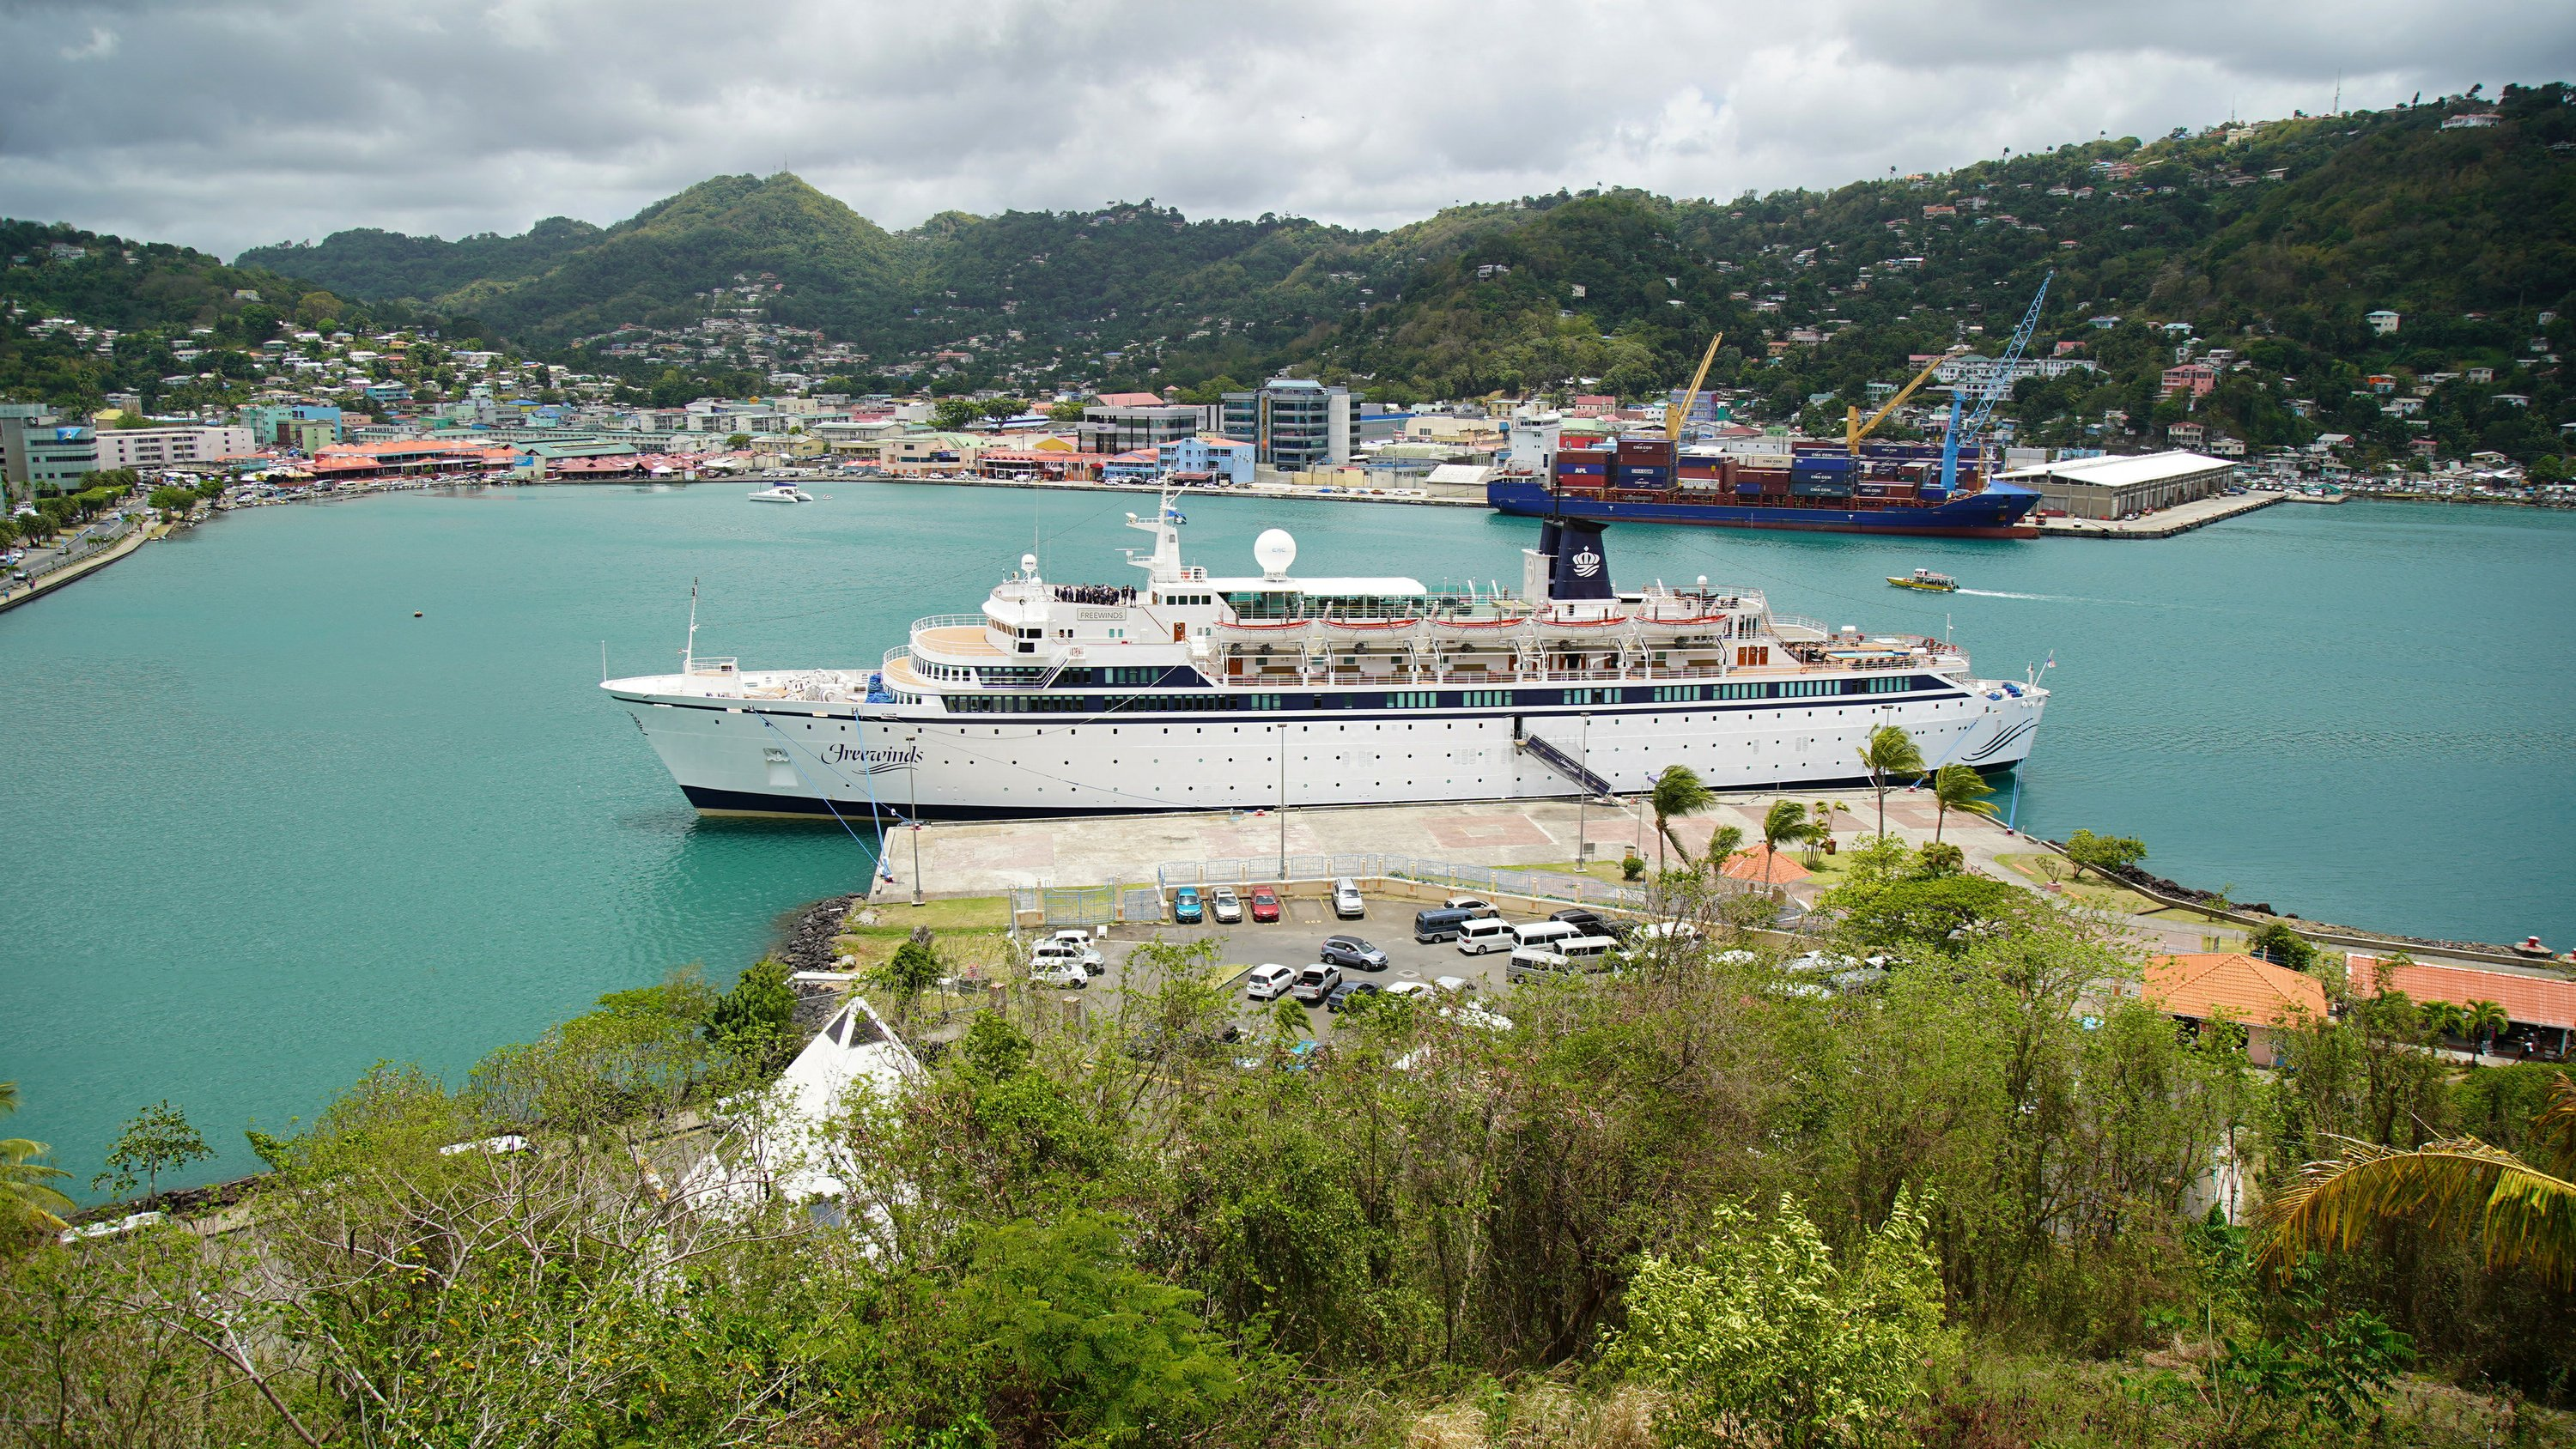 St. Lucia quarantines cruise ship after measles case